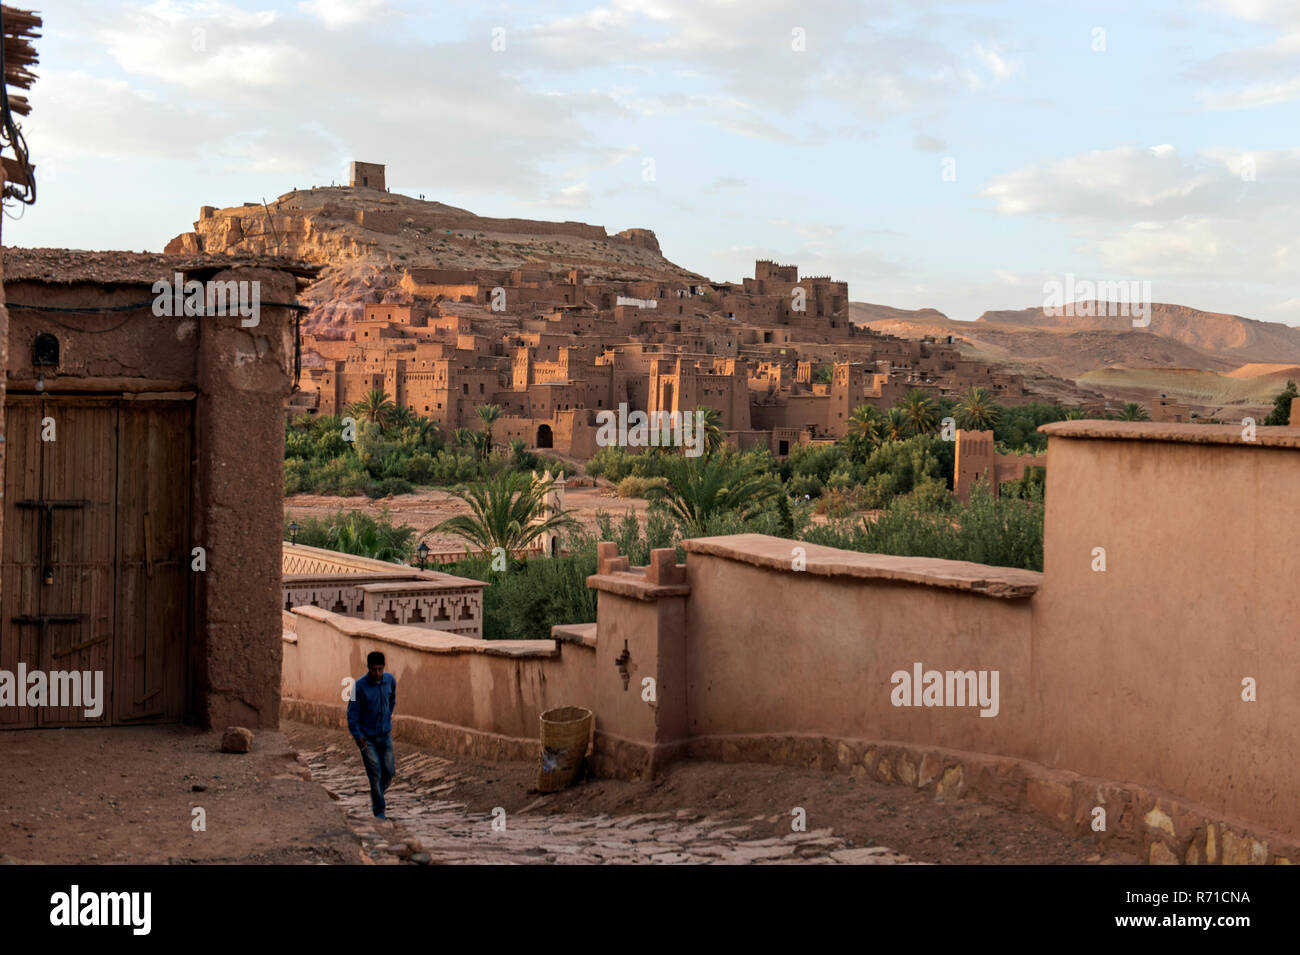 Ait Bennadou, the desert town used for movie making, near Ourzazate Stock Photo